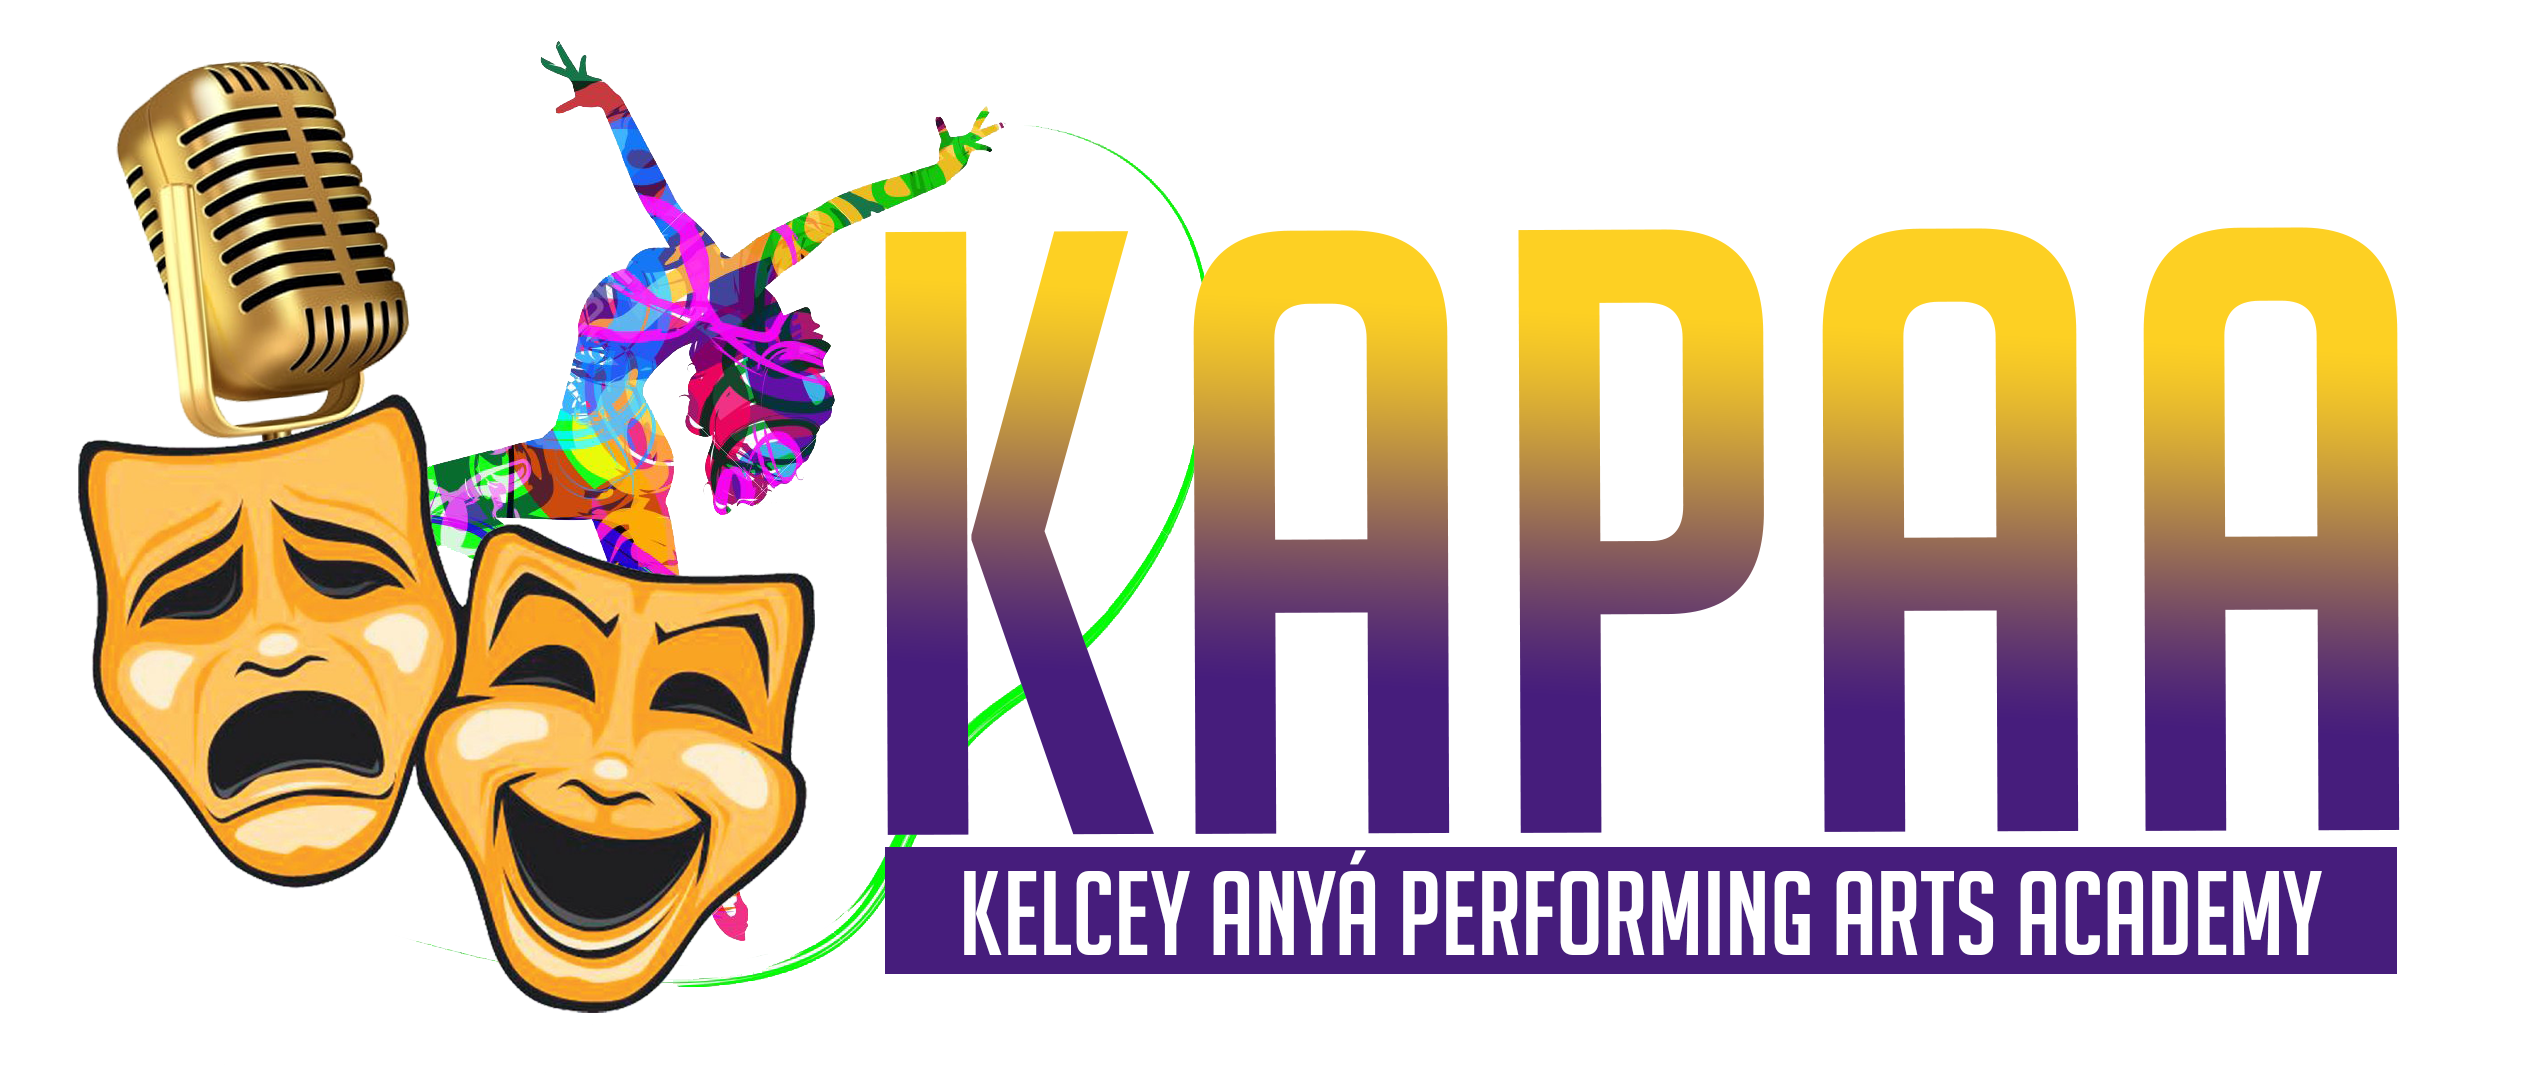 Kelcey Anyá Performing Arts Academy